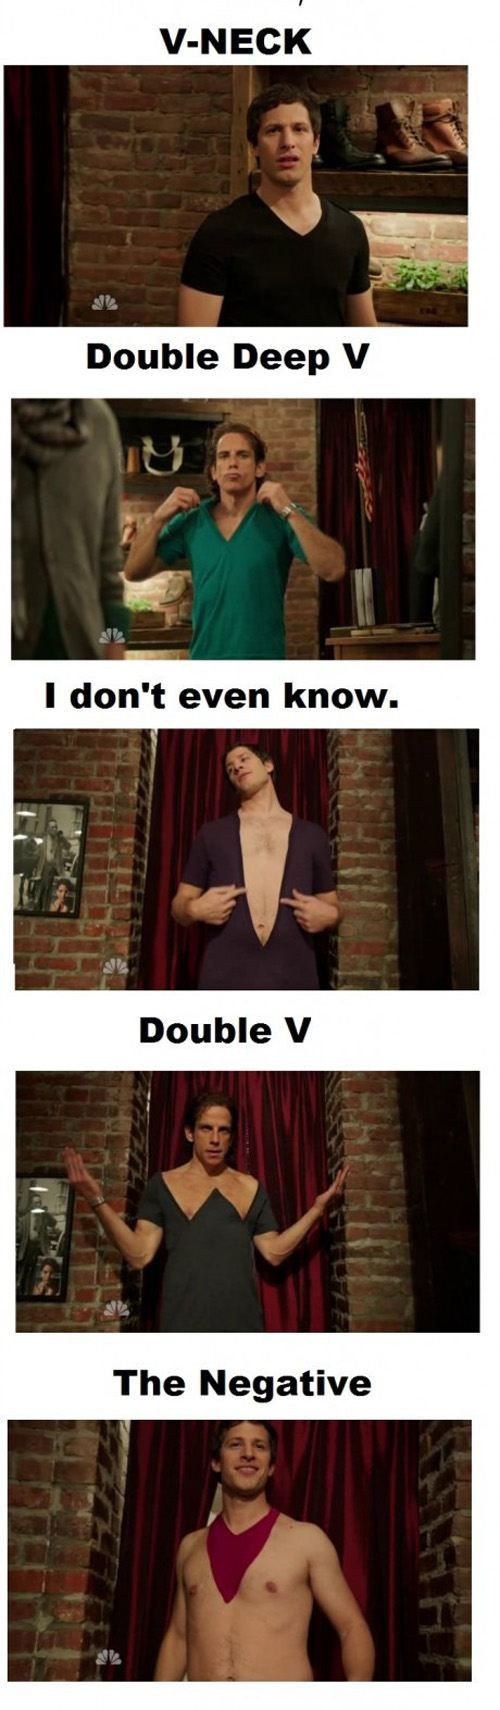 LMAO, I loved this skit from SNL